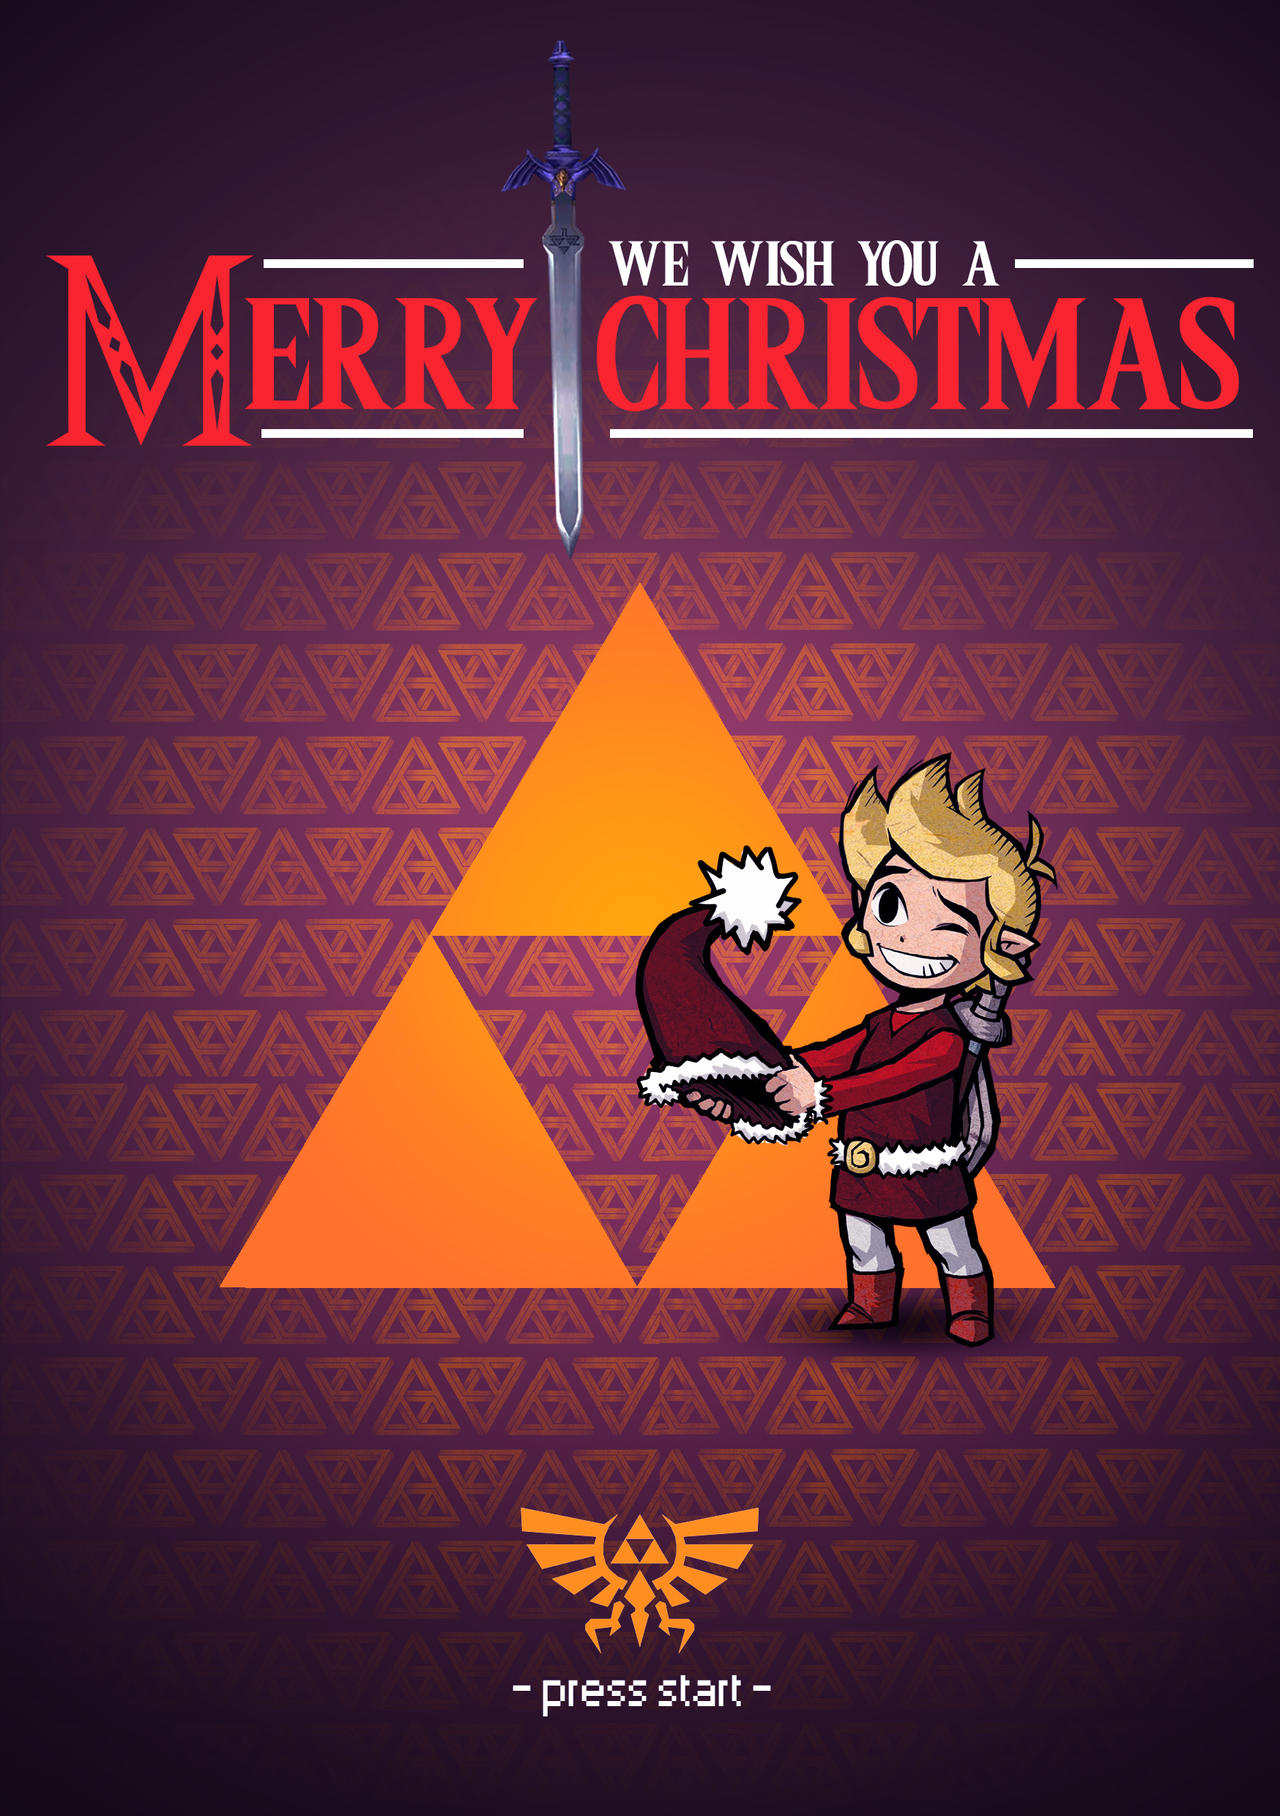 Zelda Christmas Card by Seiikya